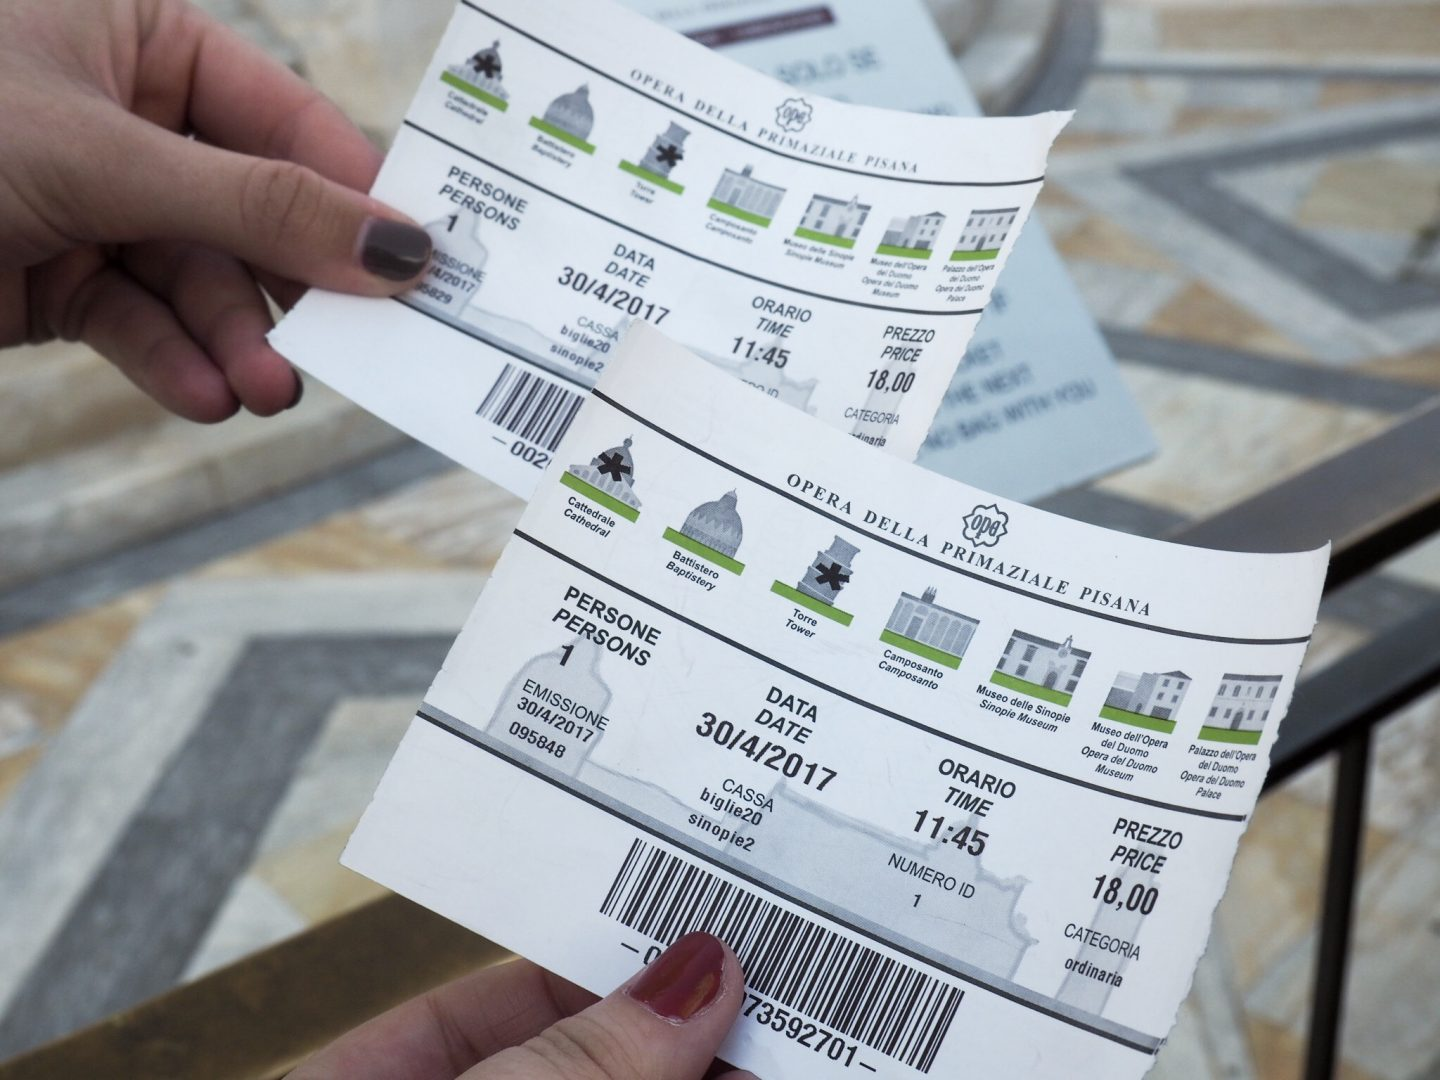 Tickets for the Leaning Tower of Pisa